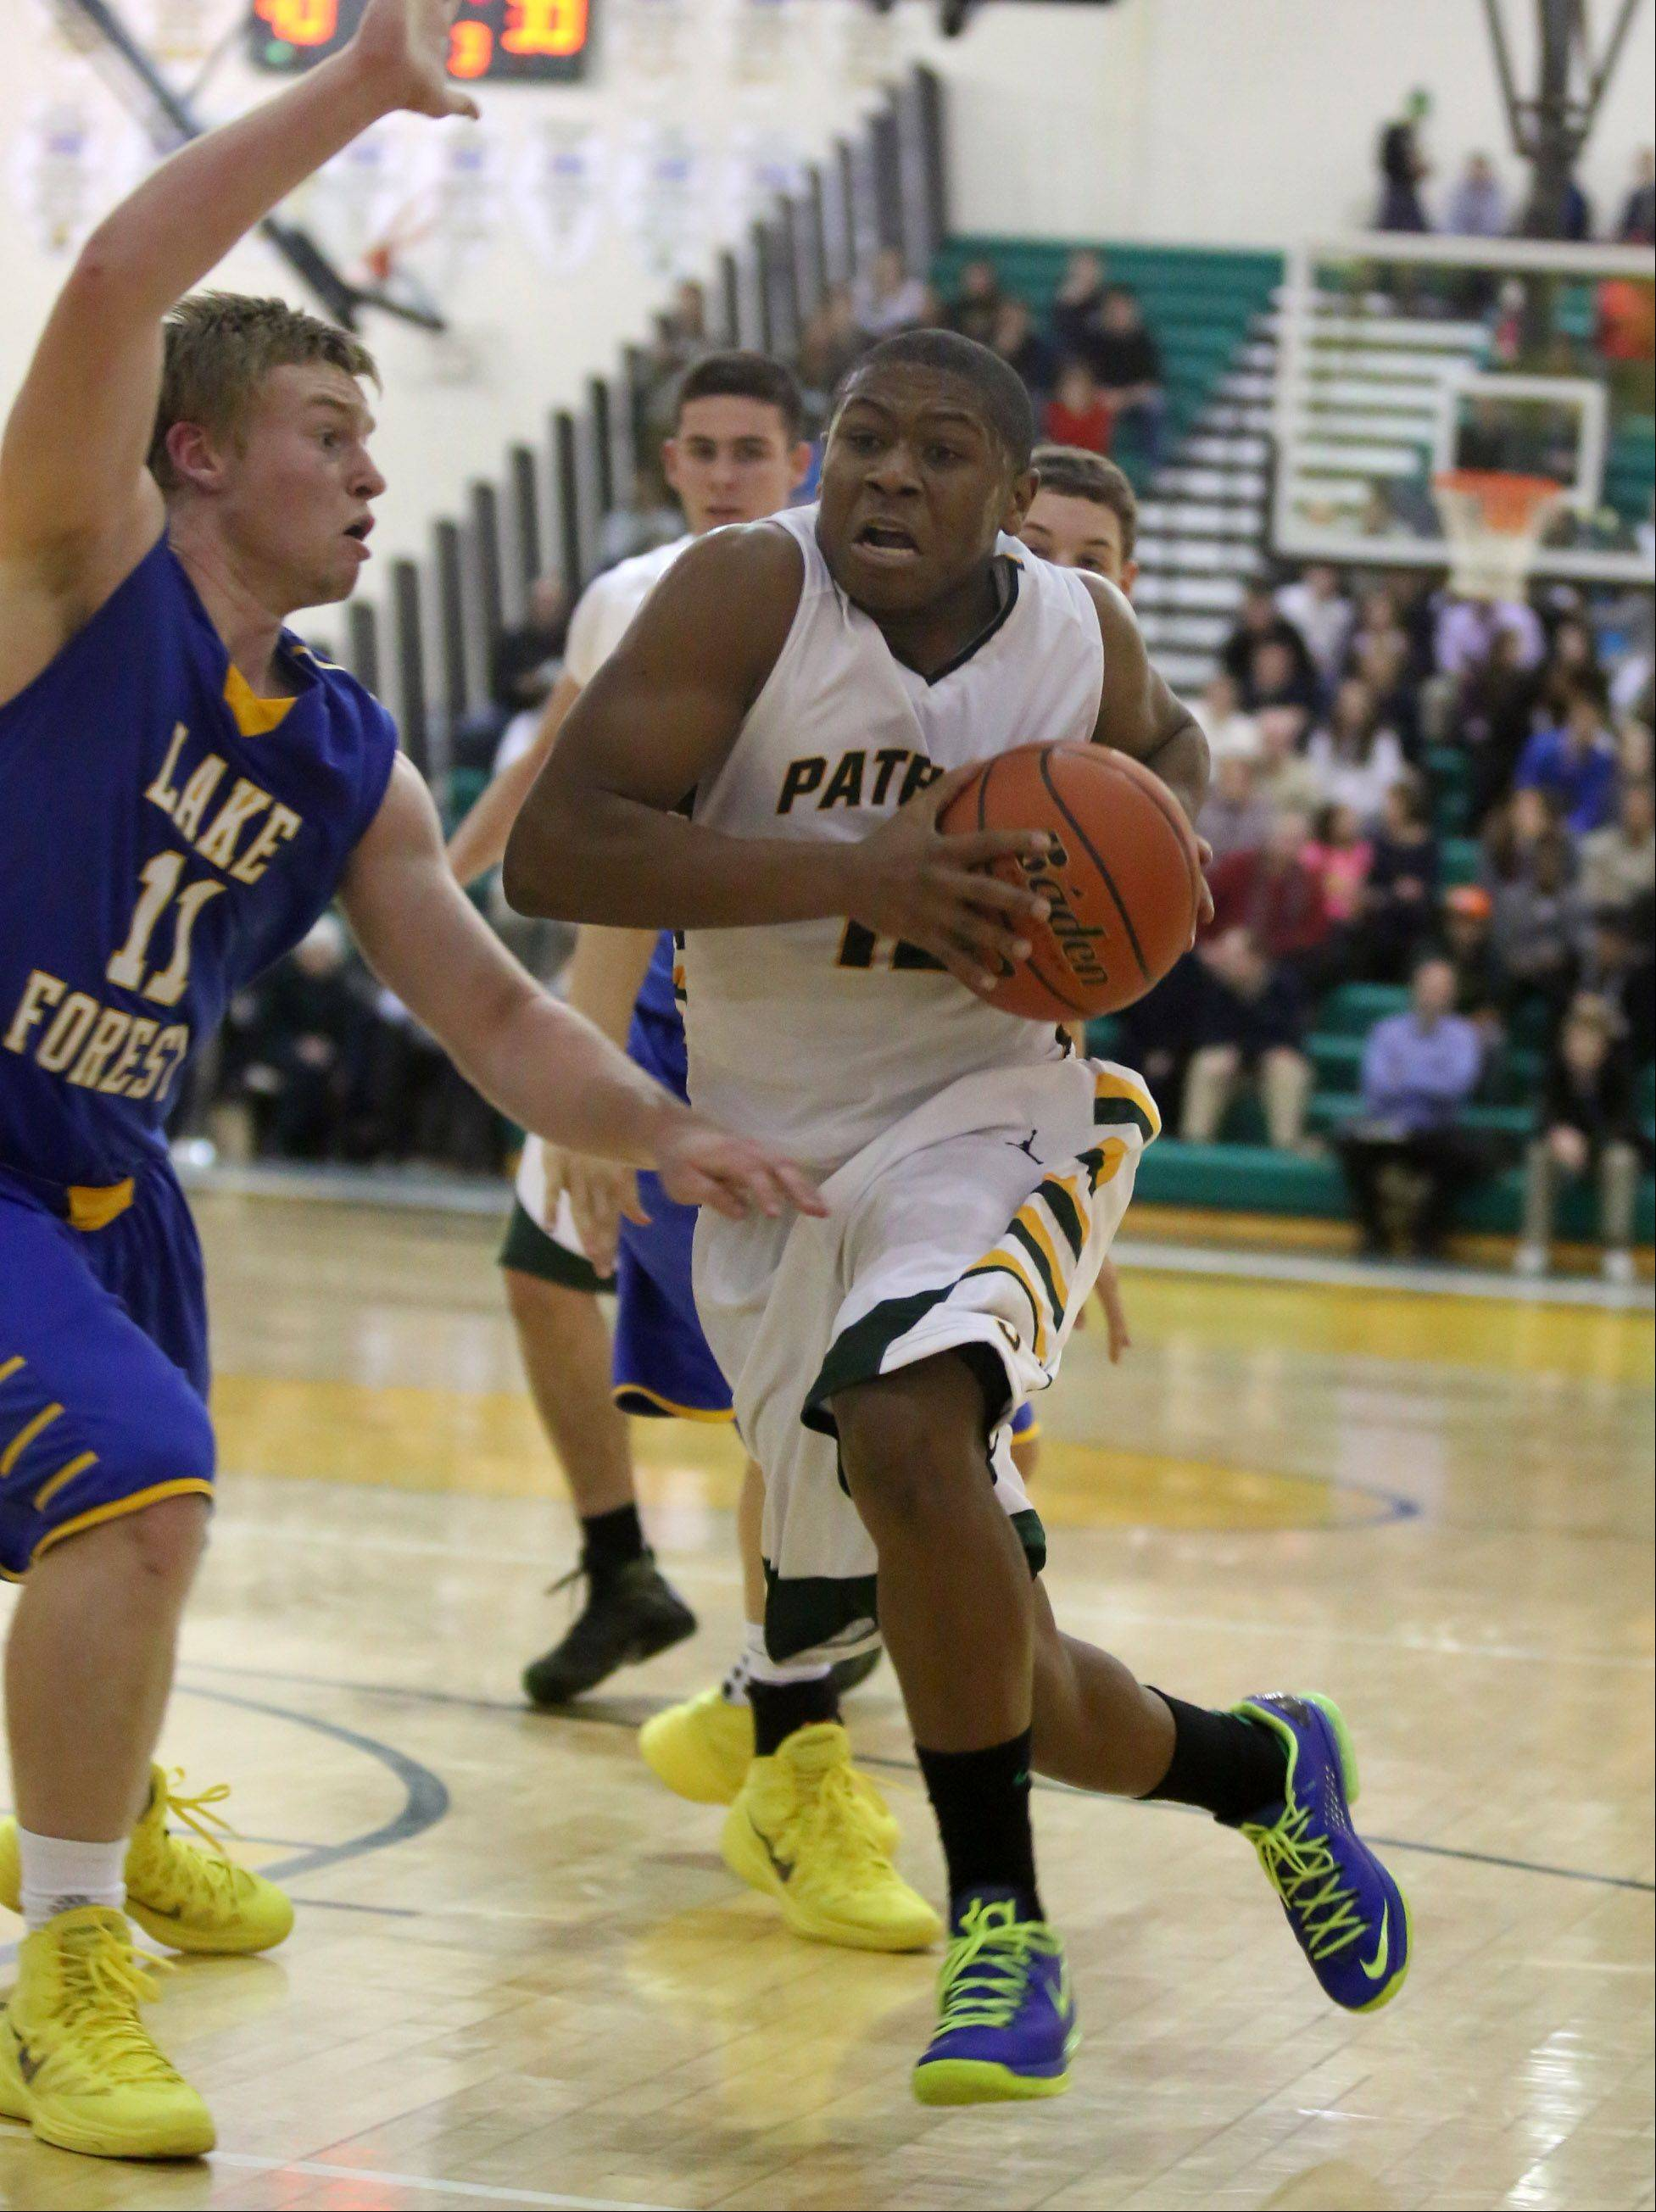 Stevenson forward Matt Johnson drives to the basket against Lake Forest defender Jack Traynor at Stevenson on Friday.